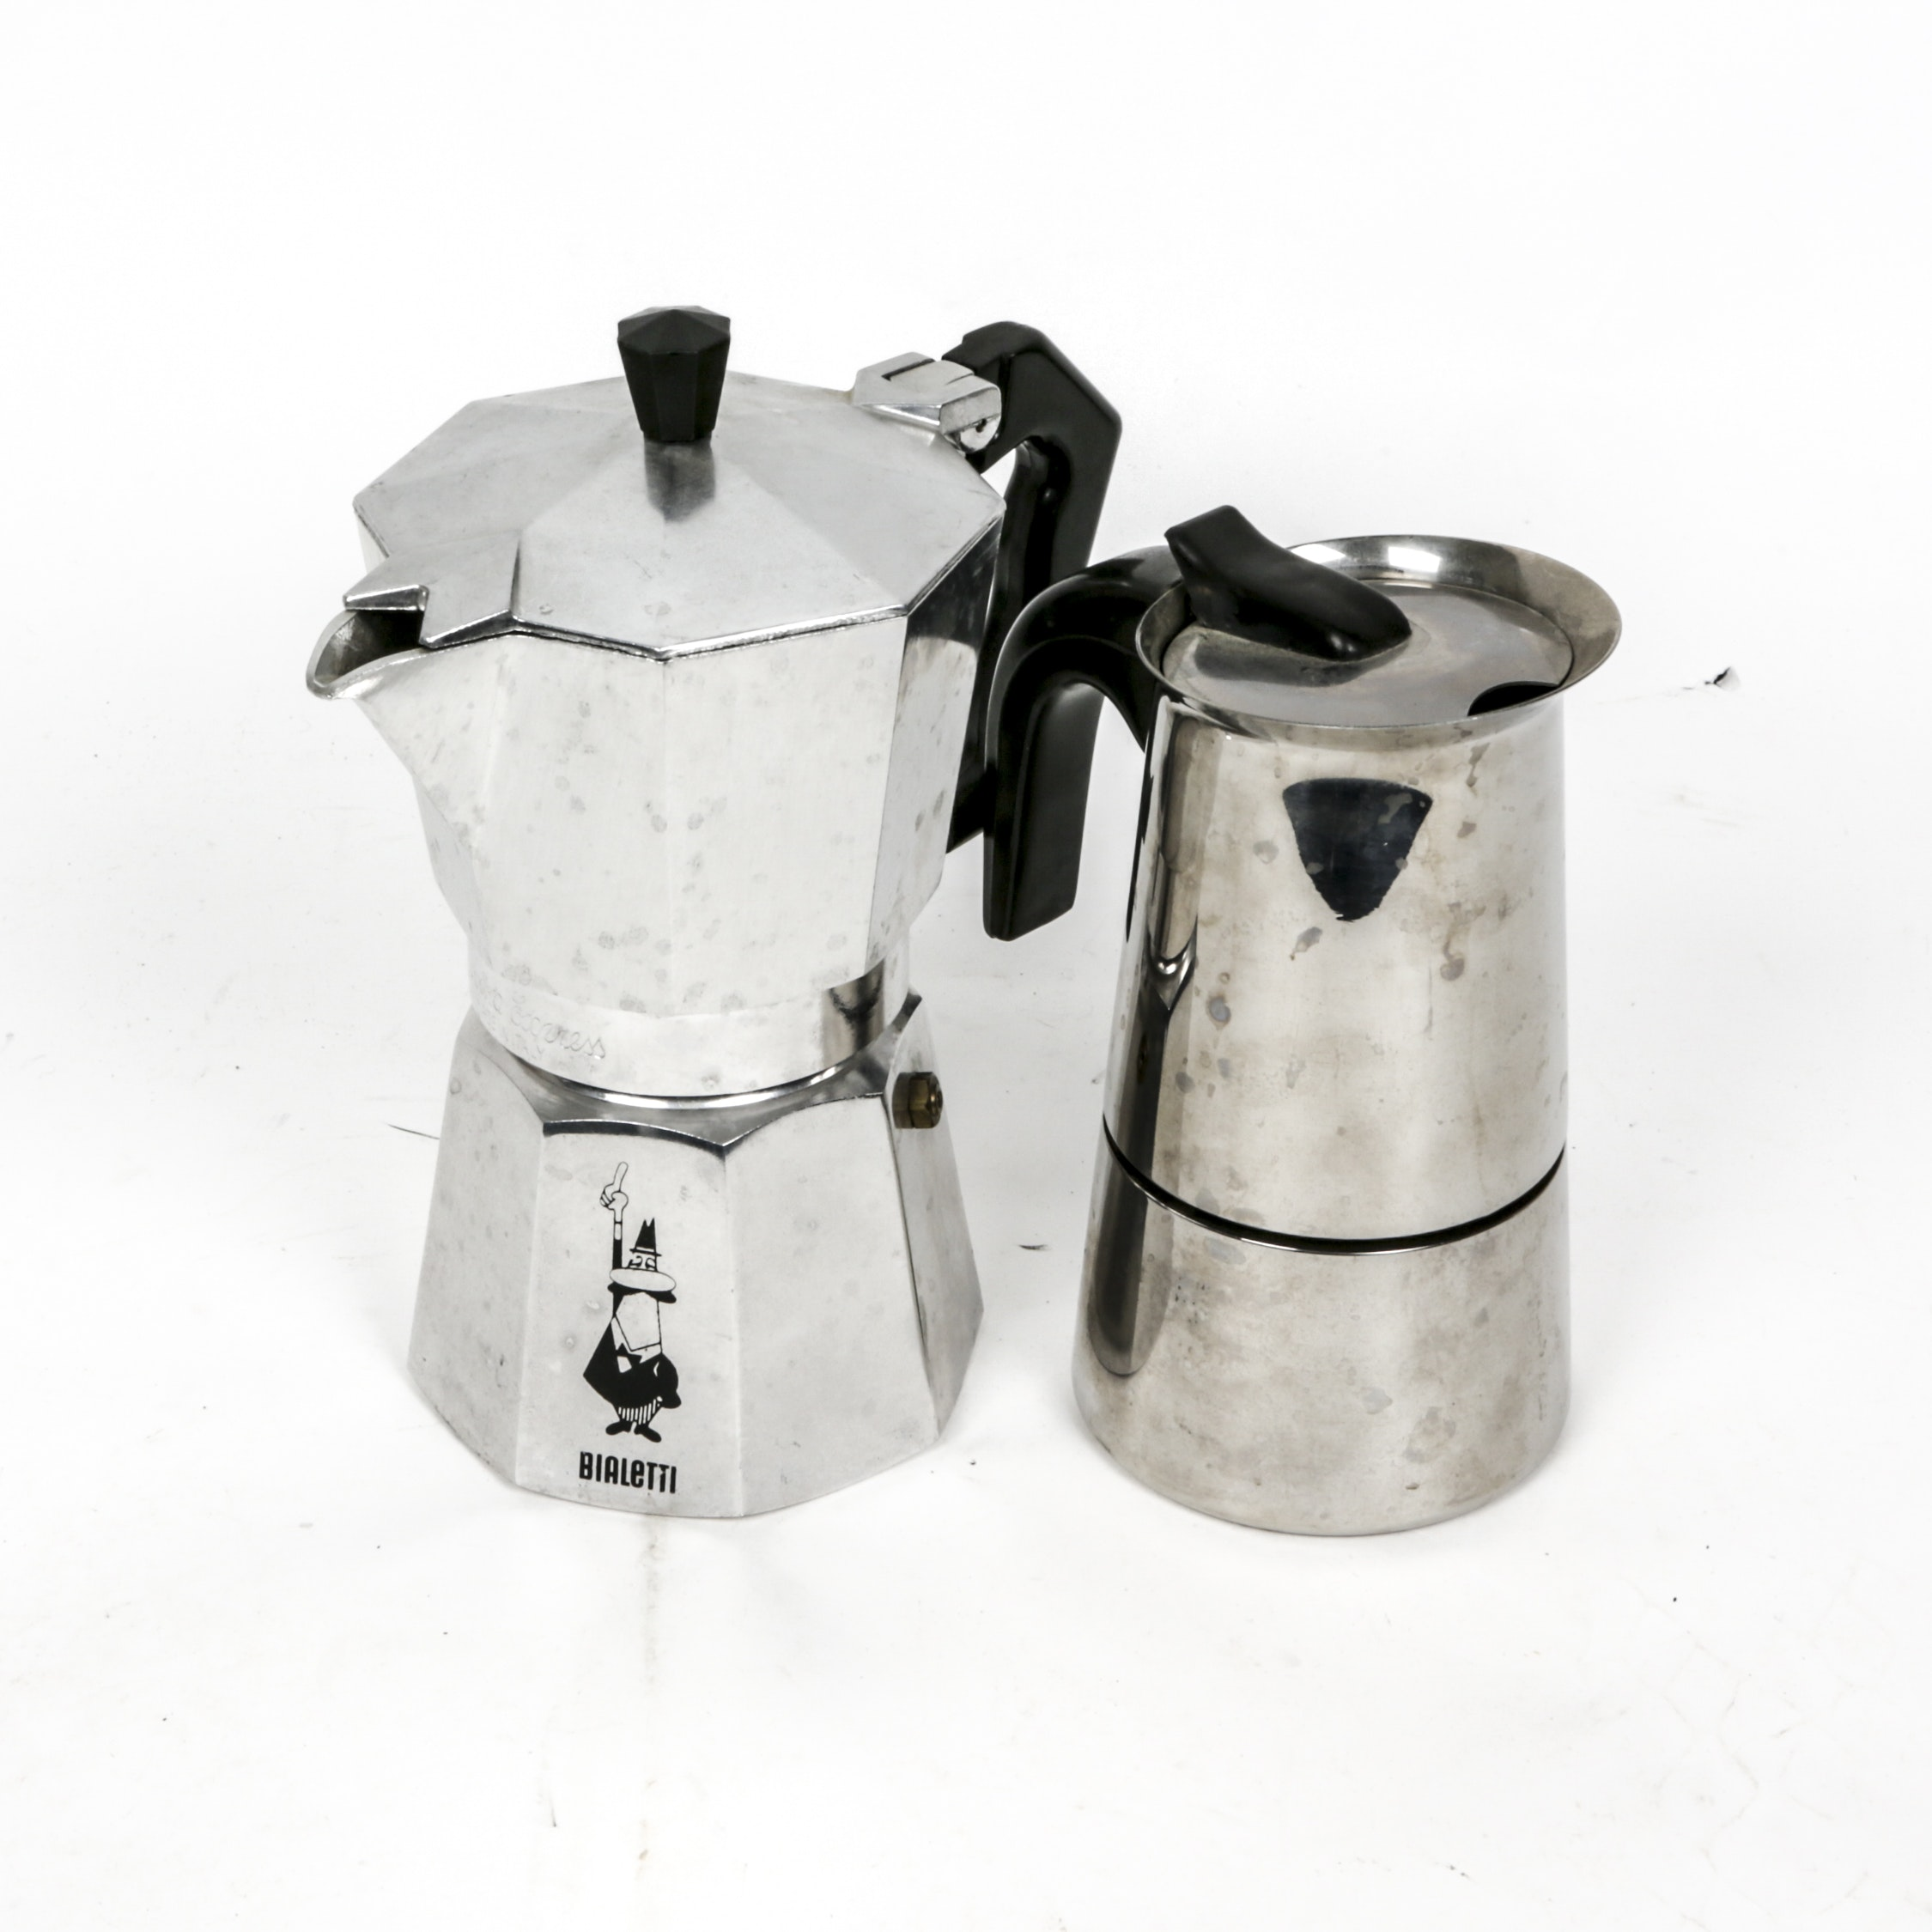 "Italian Inox and Bialetti ""Moka Express"" Espresso Maker"